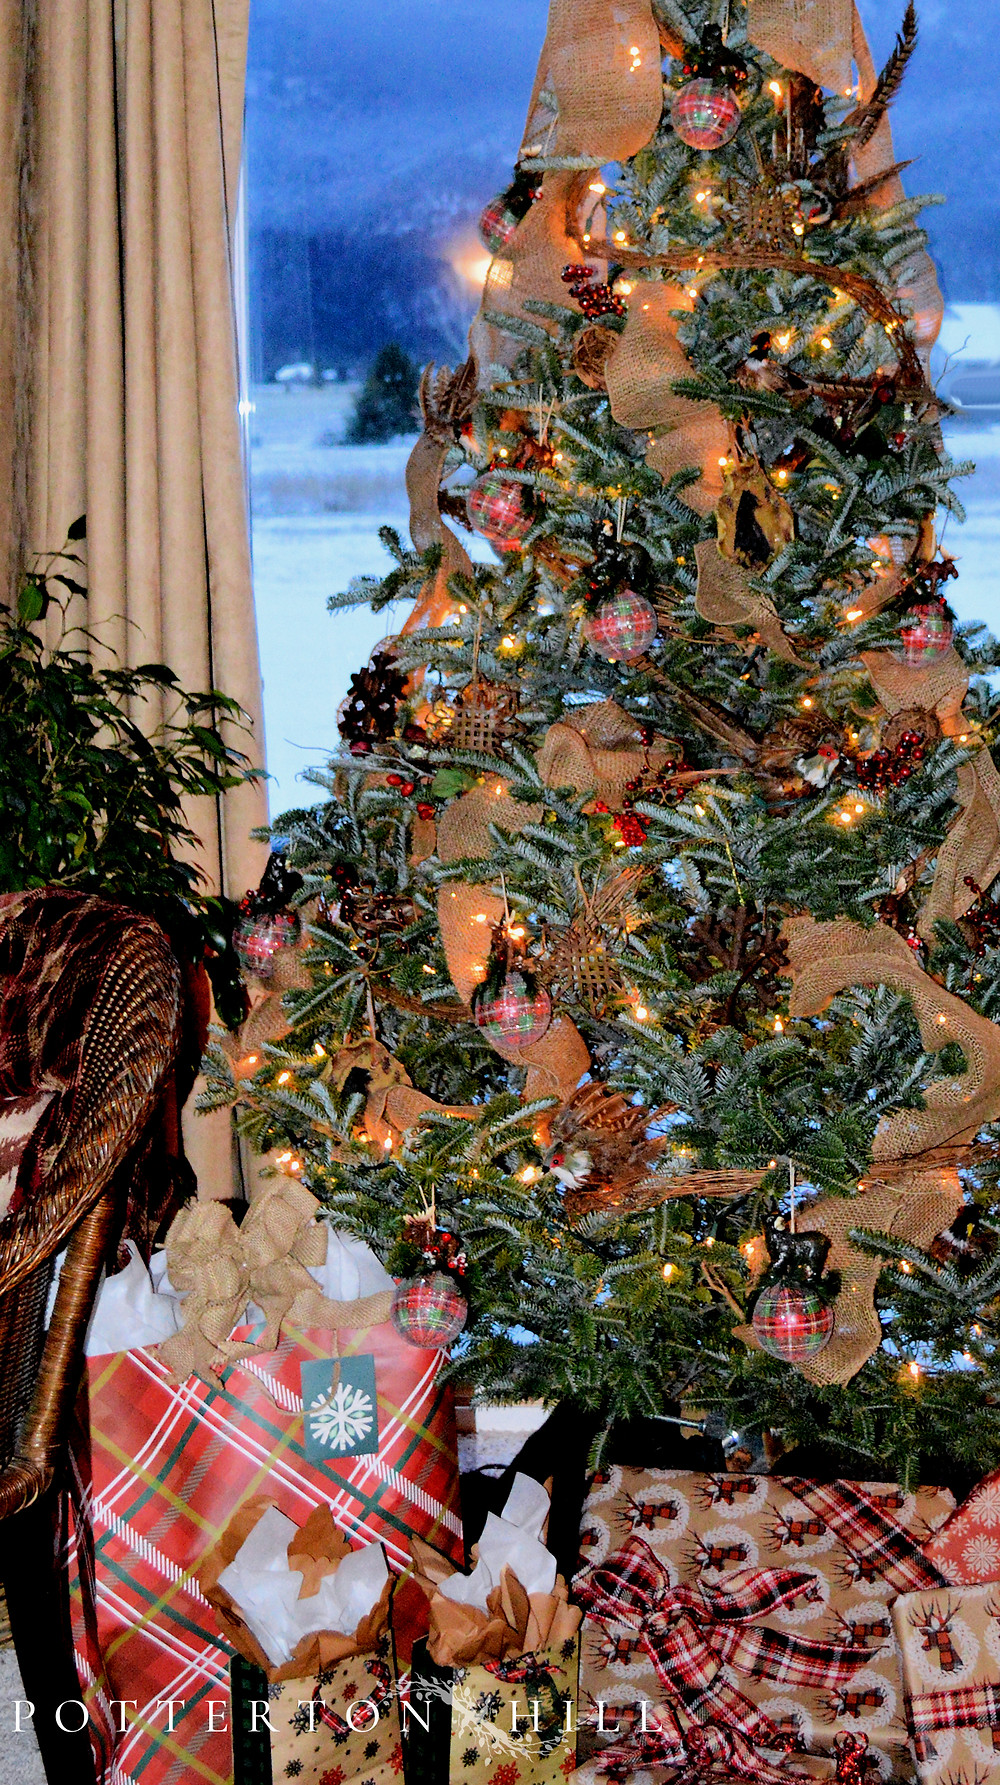 Christmas is Coming_PottertonHill.com_Christmas tree decorated